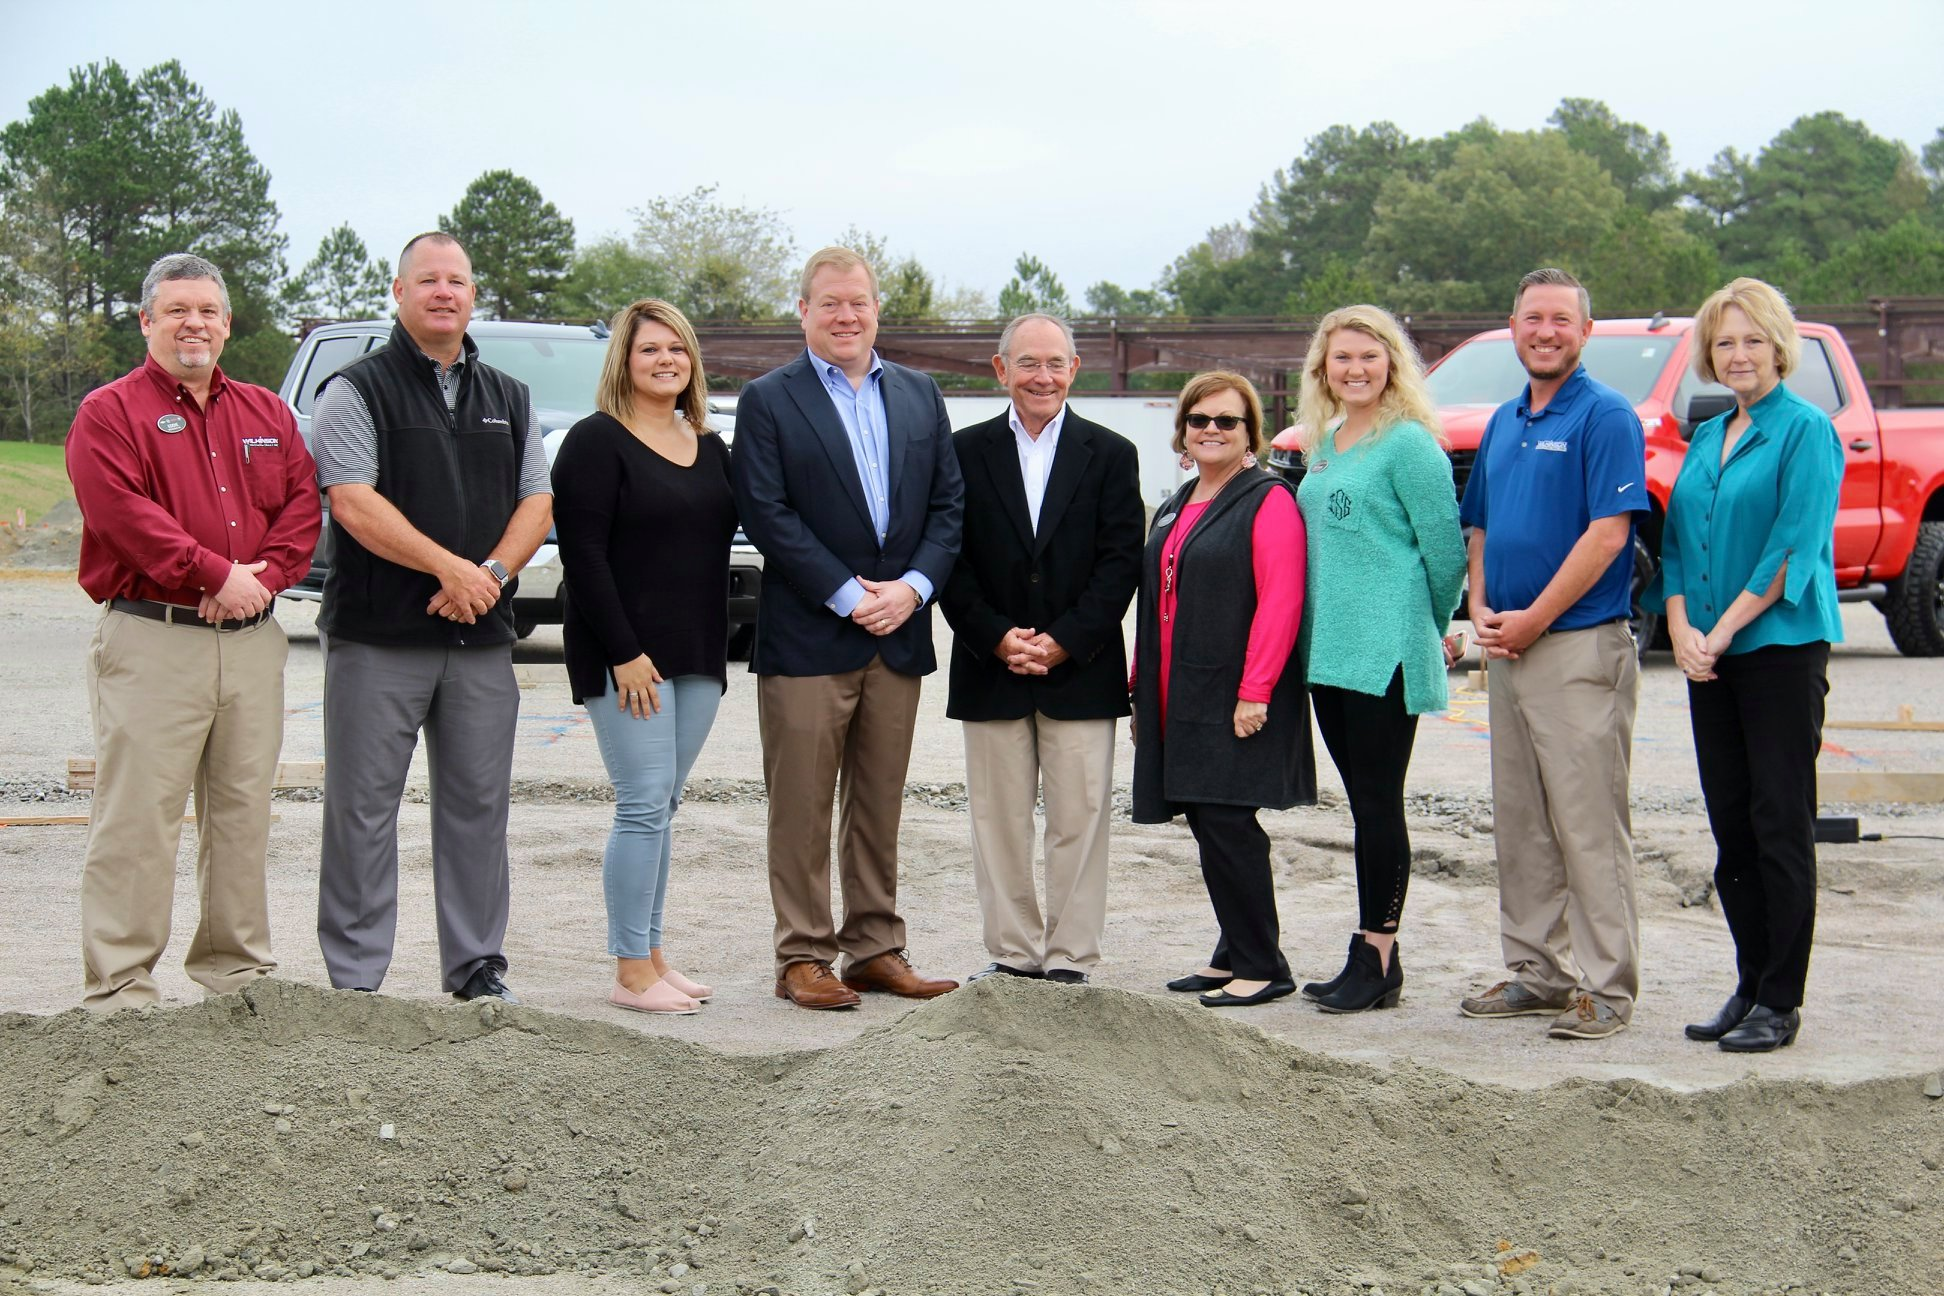 Owner Wil Wilkinson and his team at the groundbreaking for their new location.